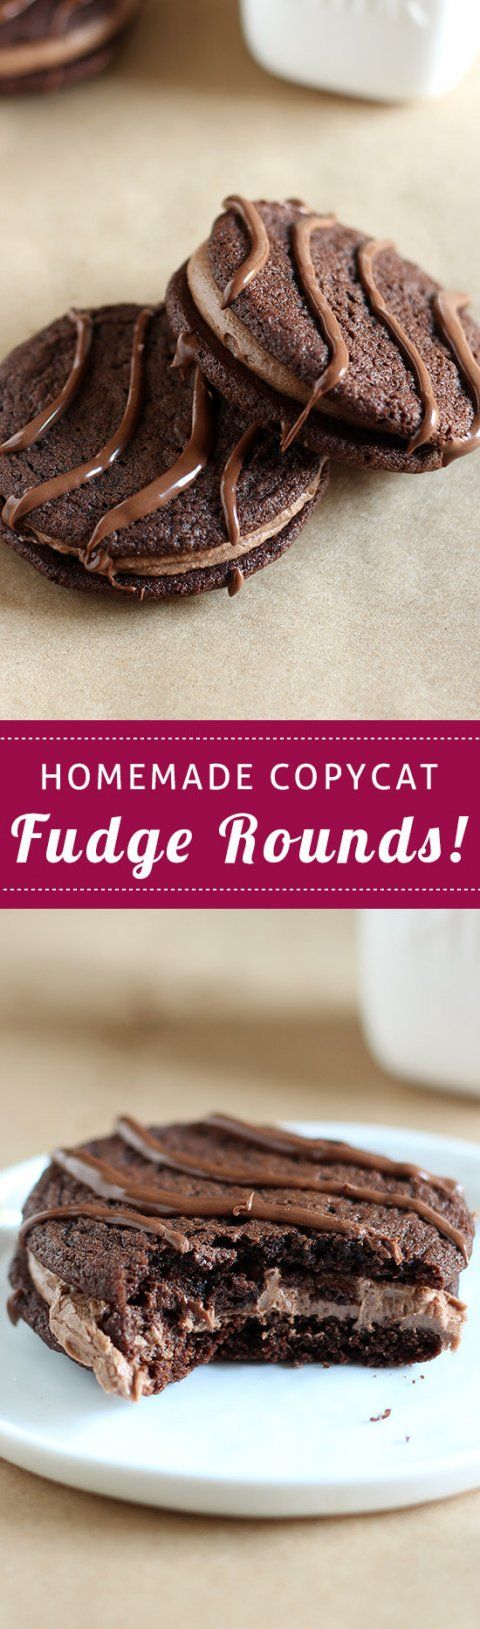 I LOVED these and now can make them even better at home! Homemade Fudge Rounds taste just like the packaged ones but even BETTER because they're less artificial but just as chewy, fudgy, soft, and chocolaty.